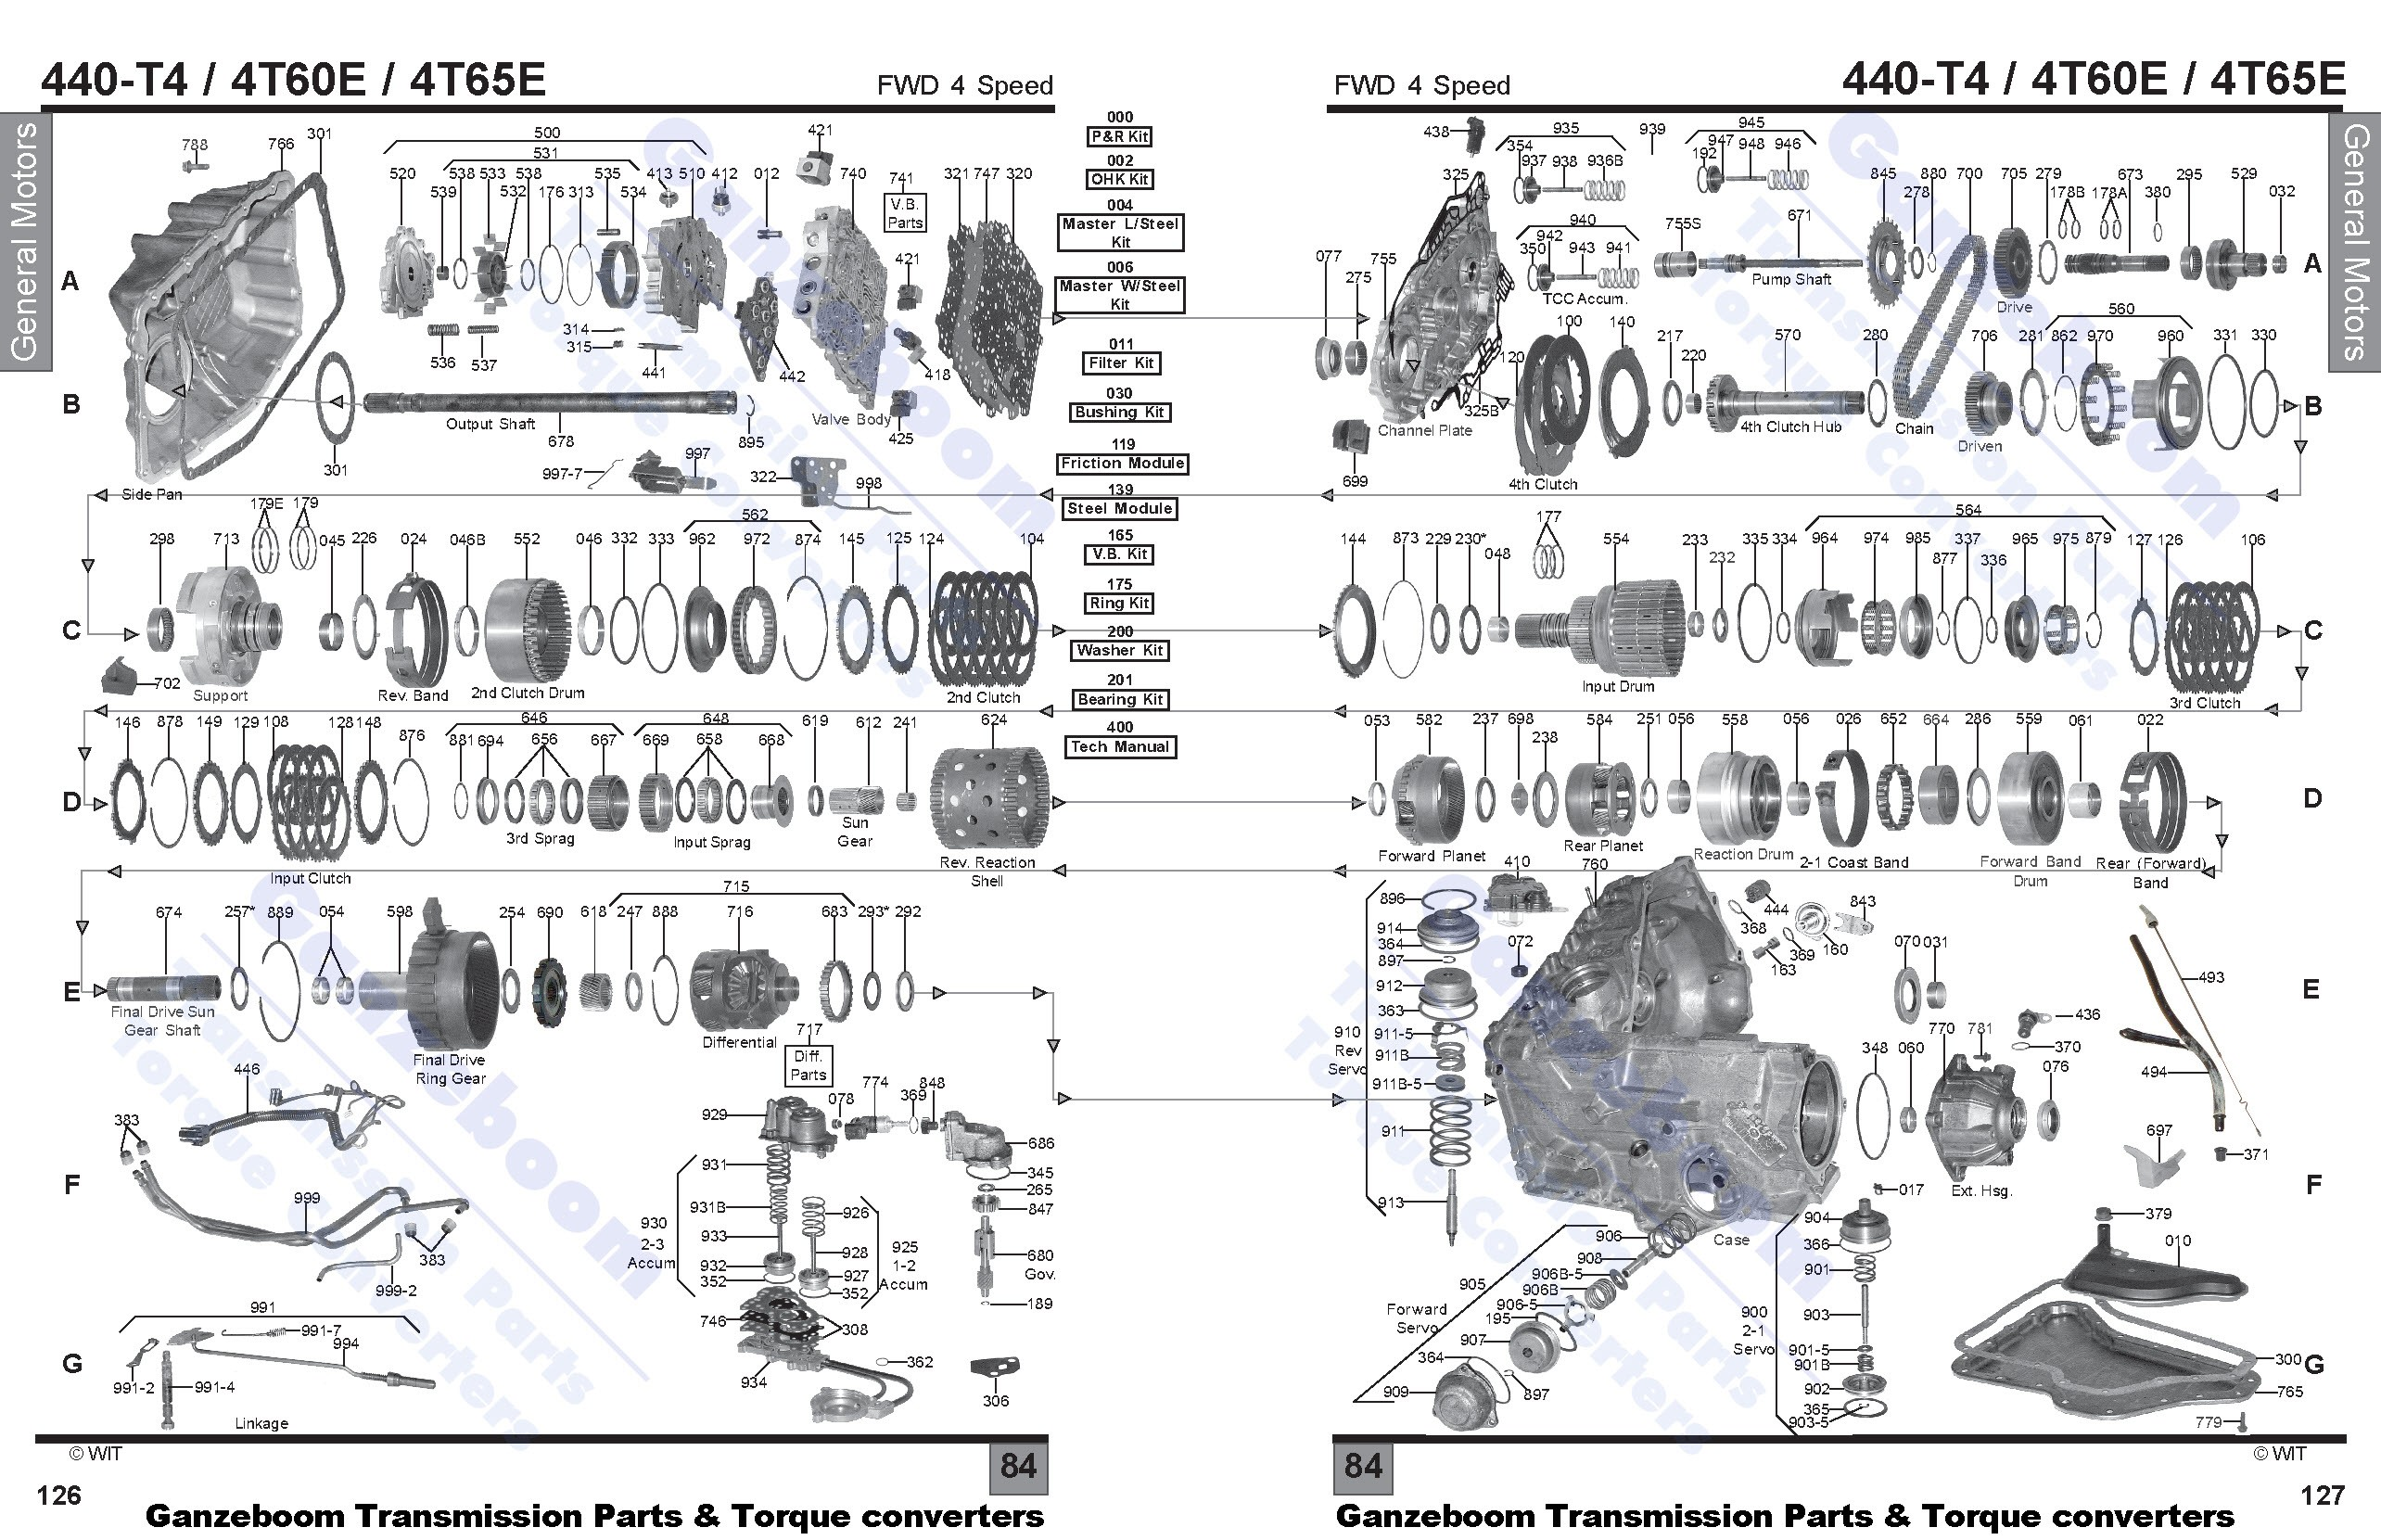 4t65e Hd Transmission Diagram Id Tag Wire Diagrams Wiring Differential Download U2022 Exploded View 440 T4 4t60e